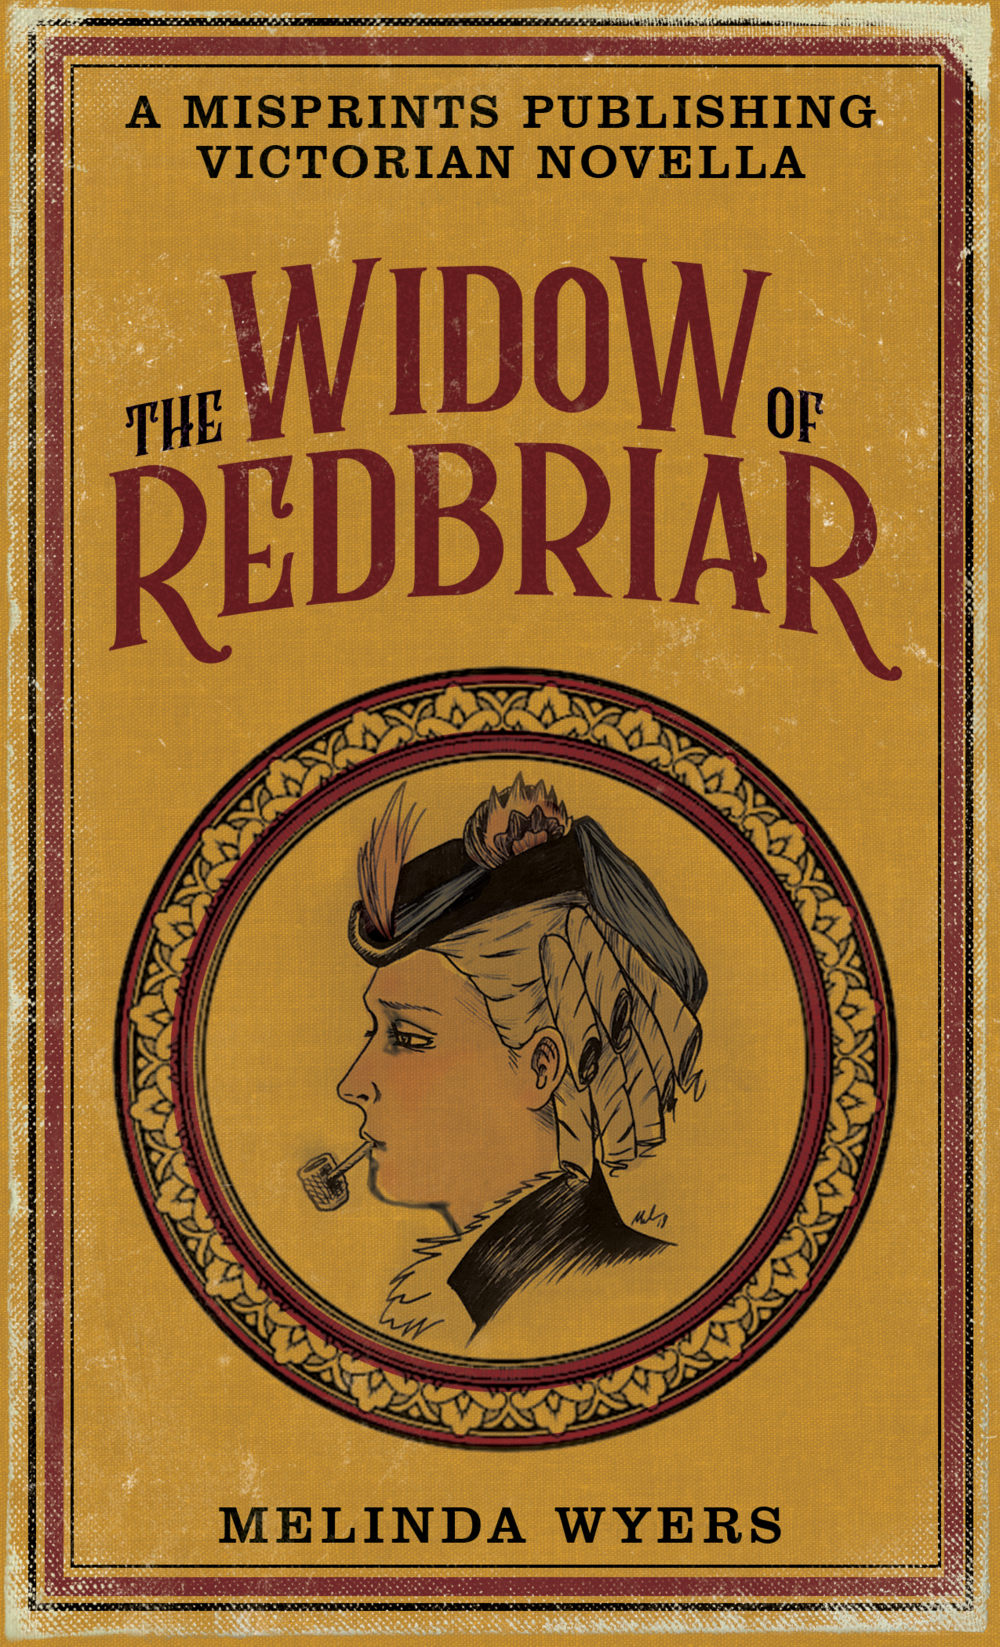 The Widow of Redbriar - My first book is set to come out on January 15th 2019. Keep an eye out on this page for links to amazon, ibooks, and more.